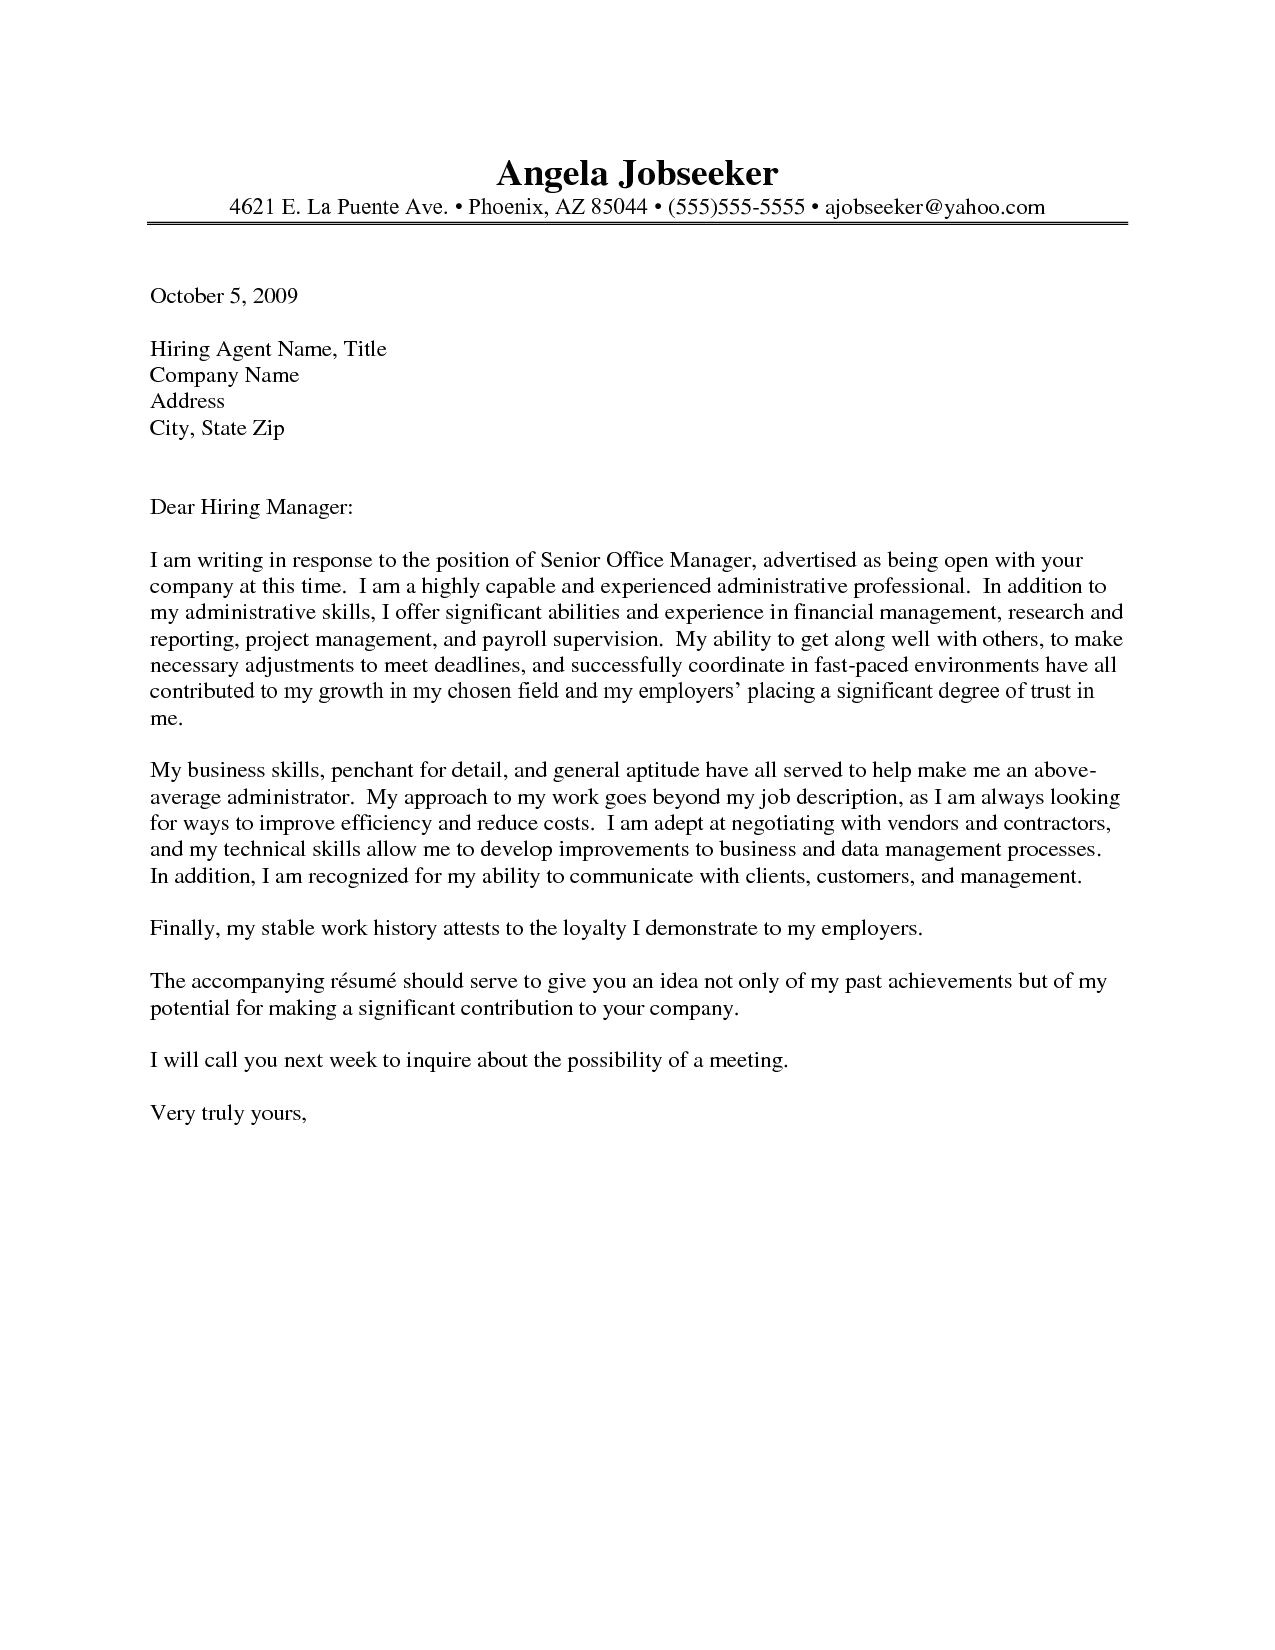 Cover Letter Examples for Administrative assistant Jobs Administrative assistant Resume Cover Letter Http